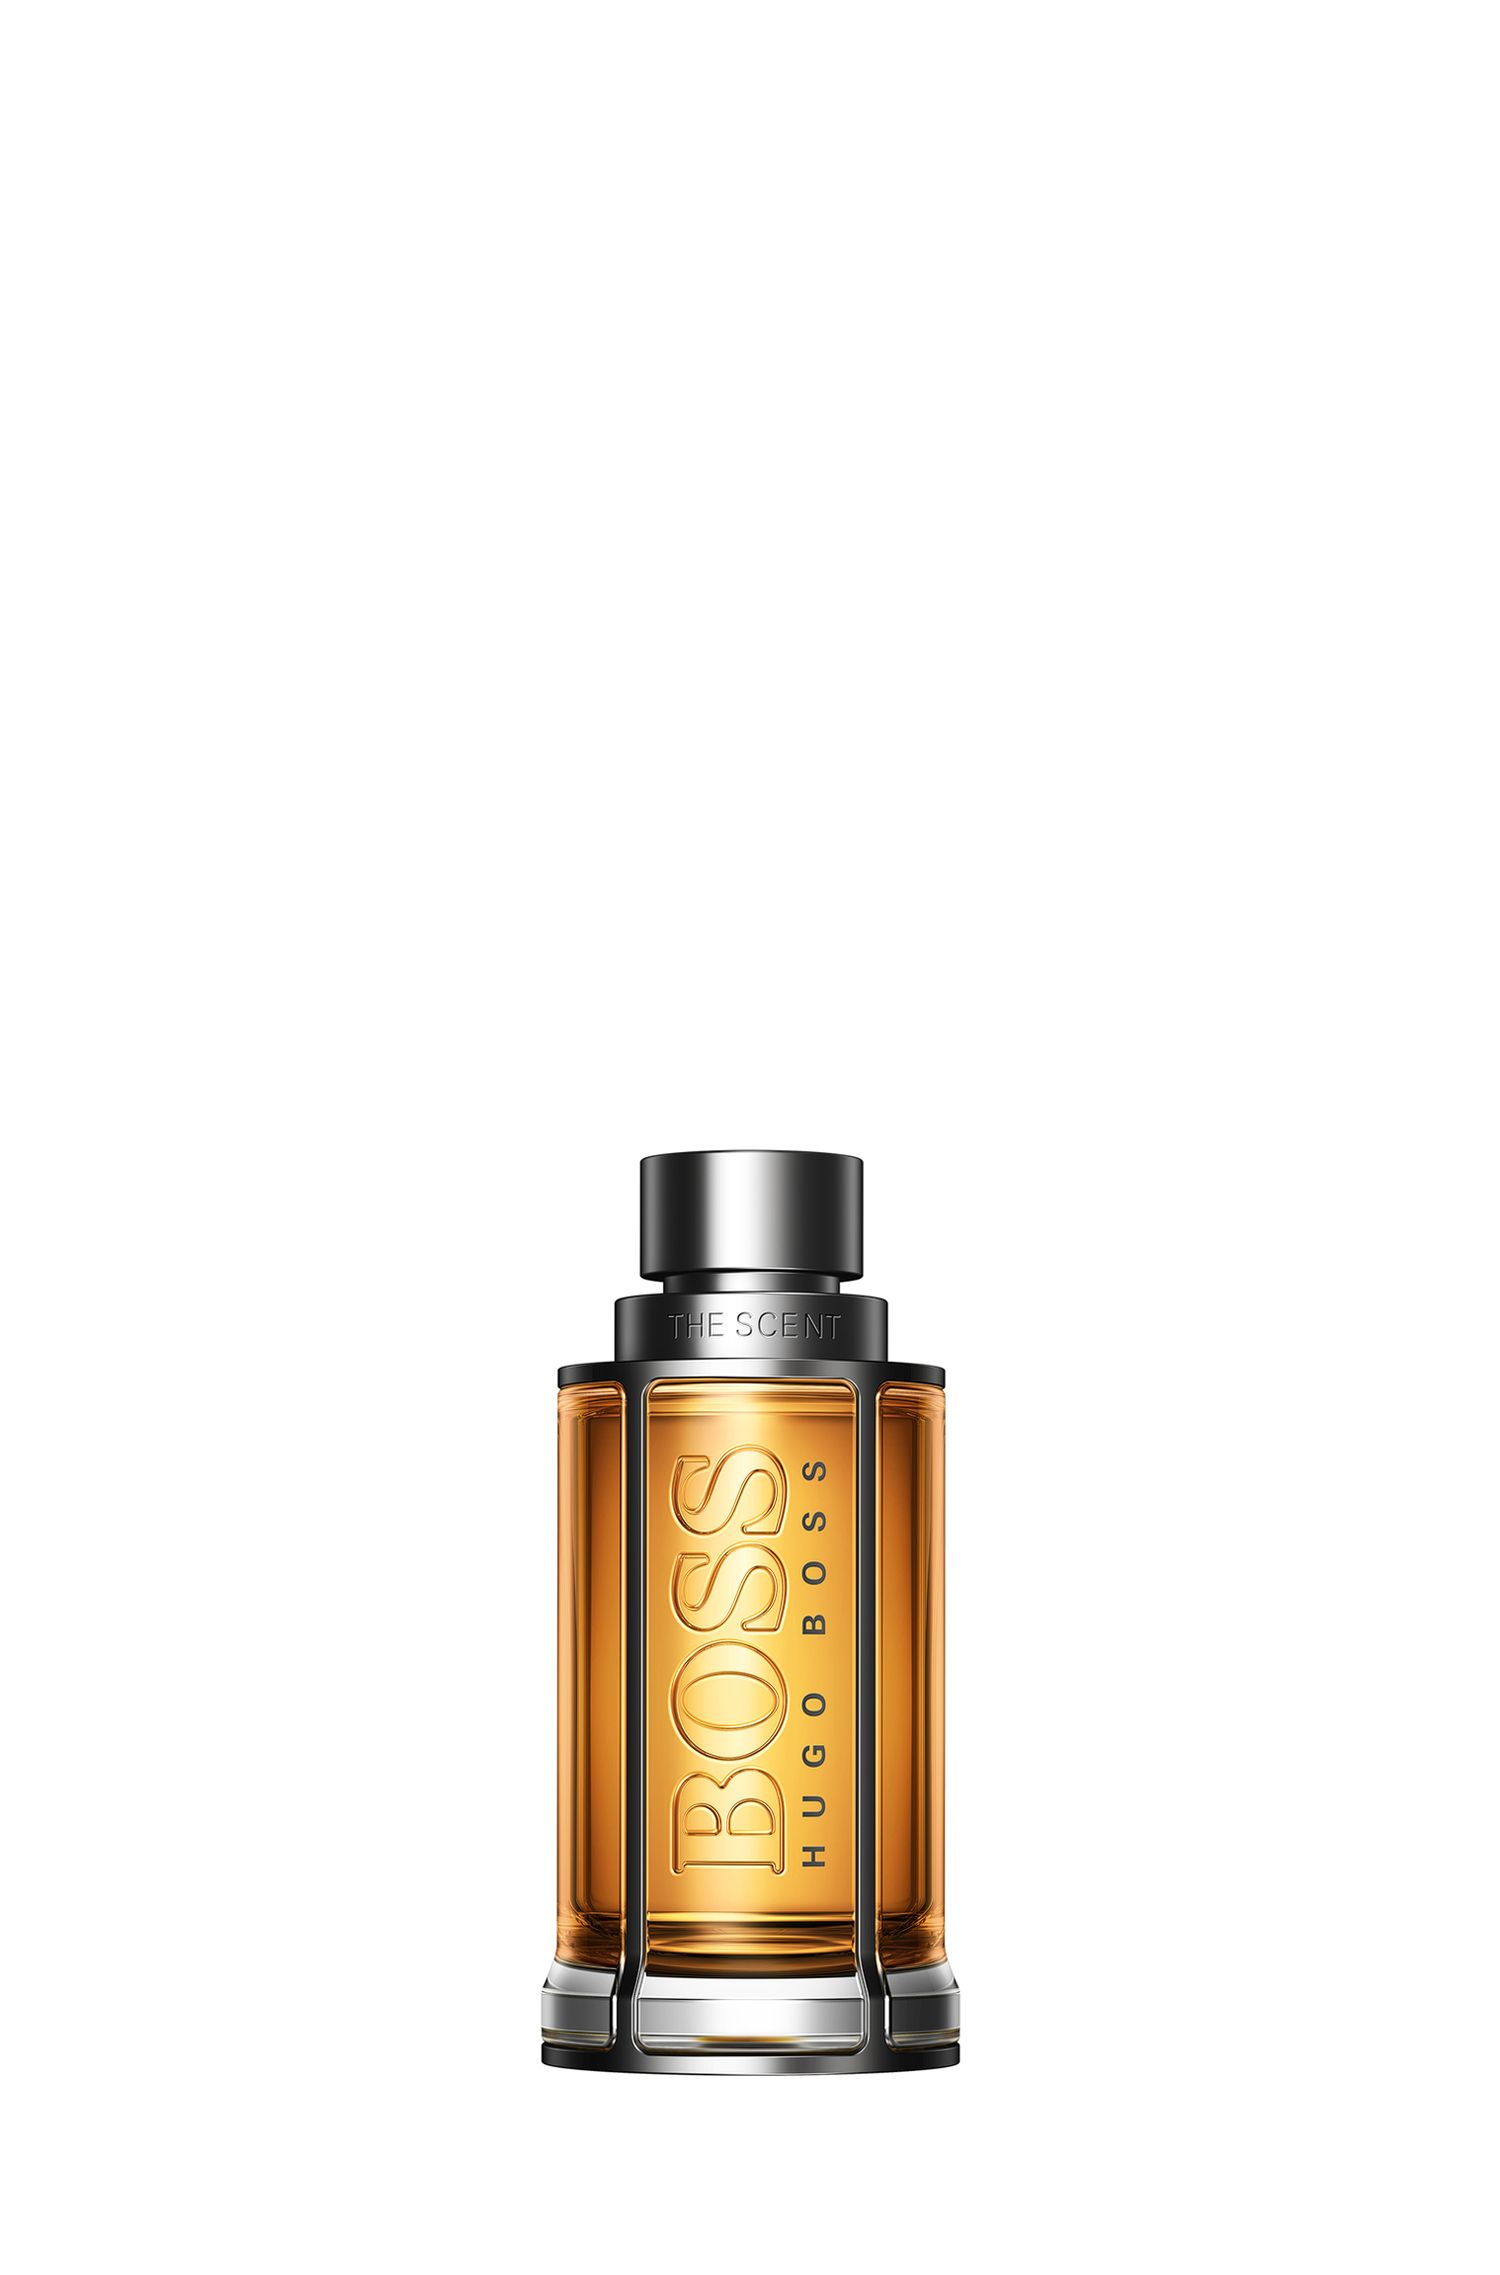 Eau de toilette BOSS The Scent da 50 ml